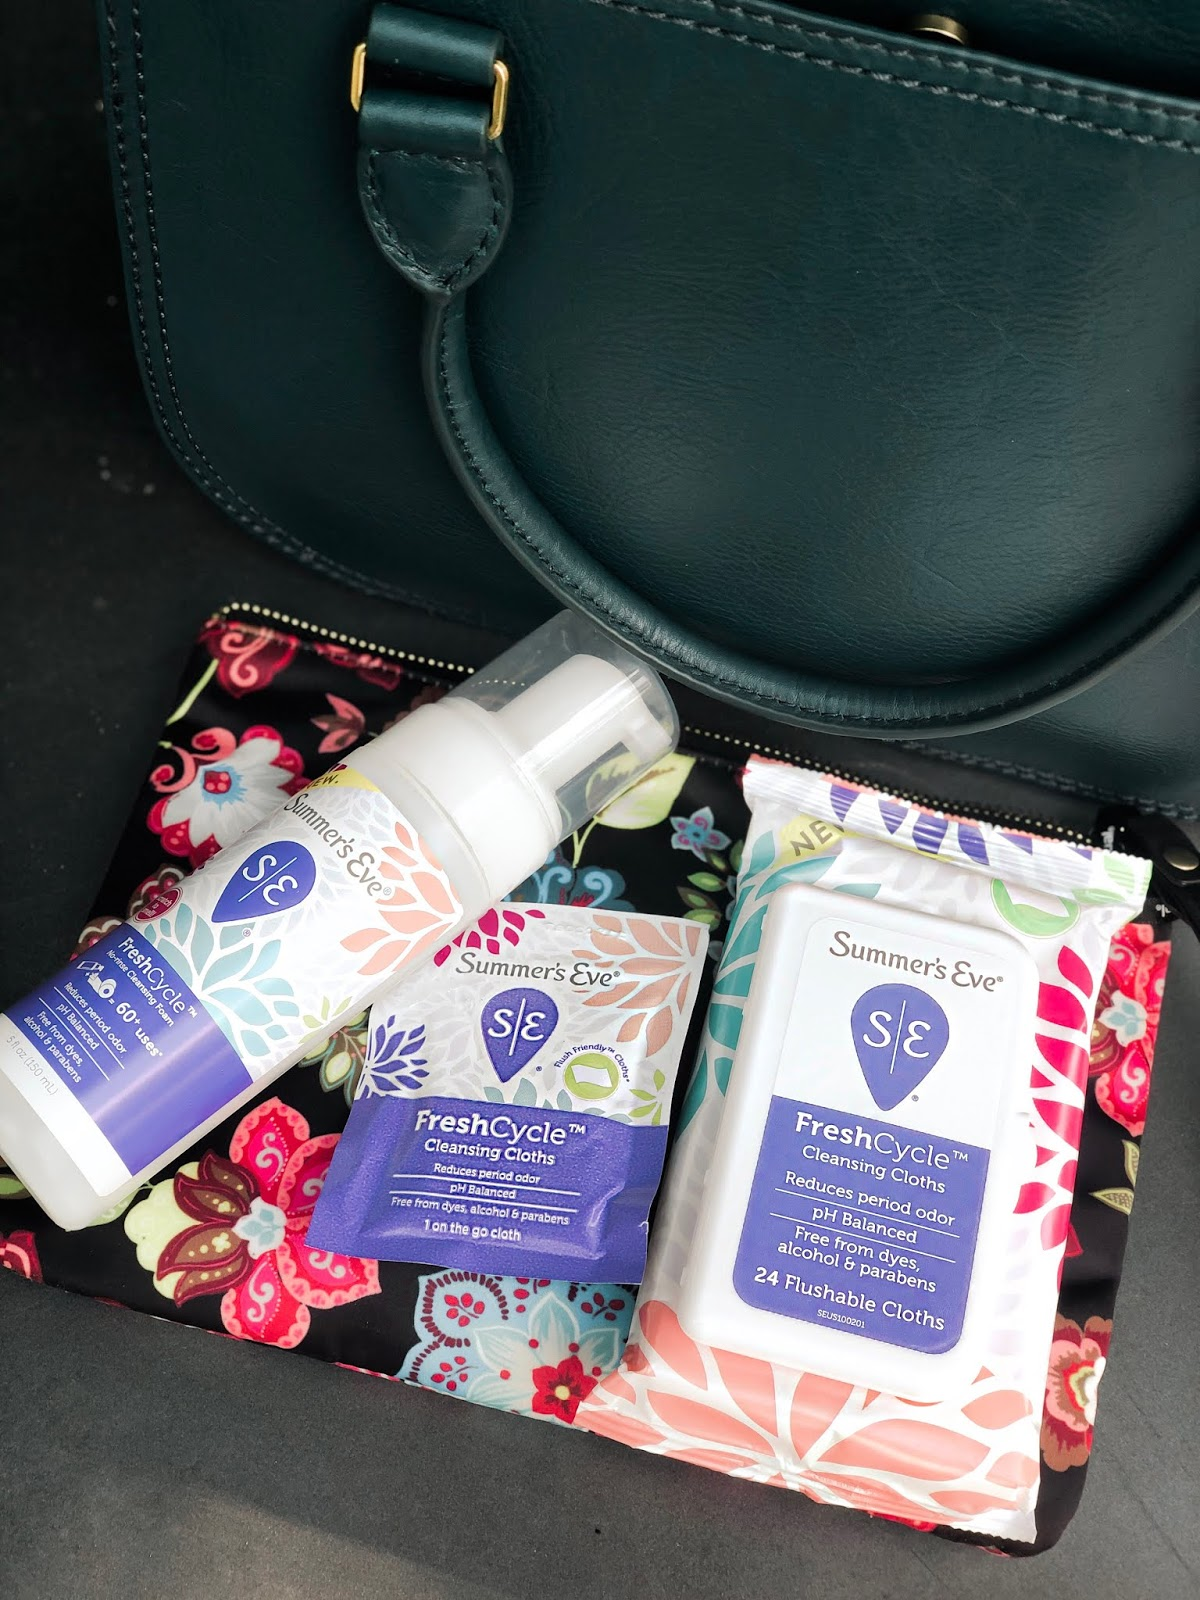 summer's eve, femmine products, femmine care, what's in my bag, women period, menstral cycle, fresh cycle